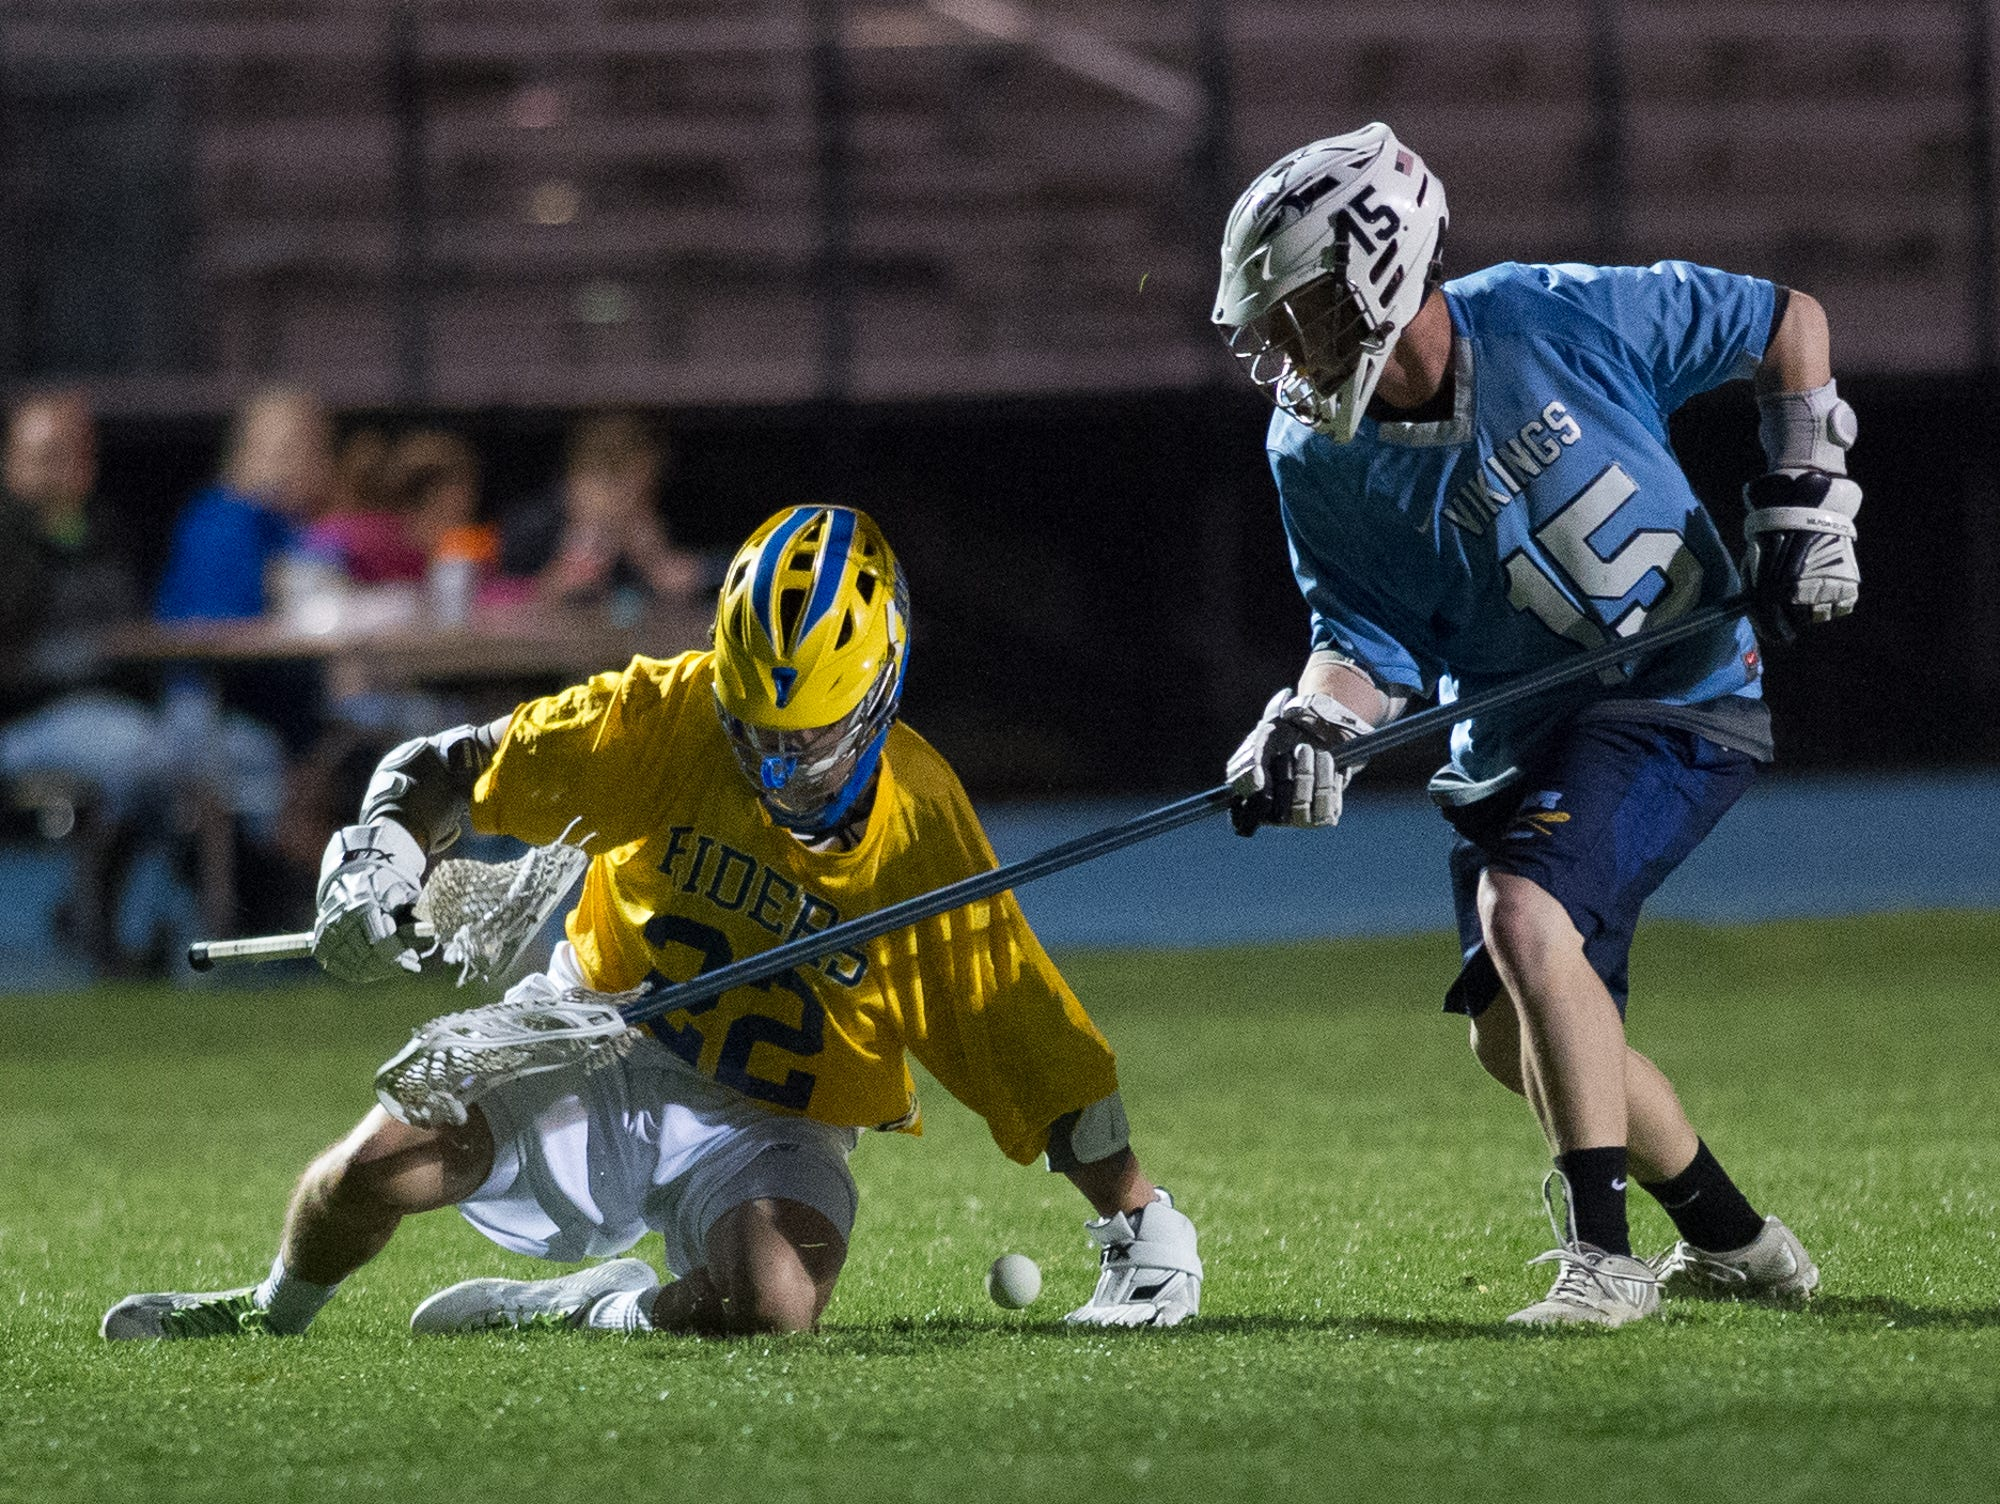 Cape Henlopen's Nicholas Conrad (15), right knocks the ball away from Caesar Rodney's Jacob Pangle (22) in the 4th quarter of play.